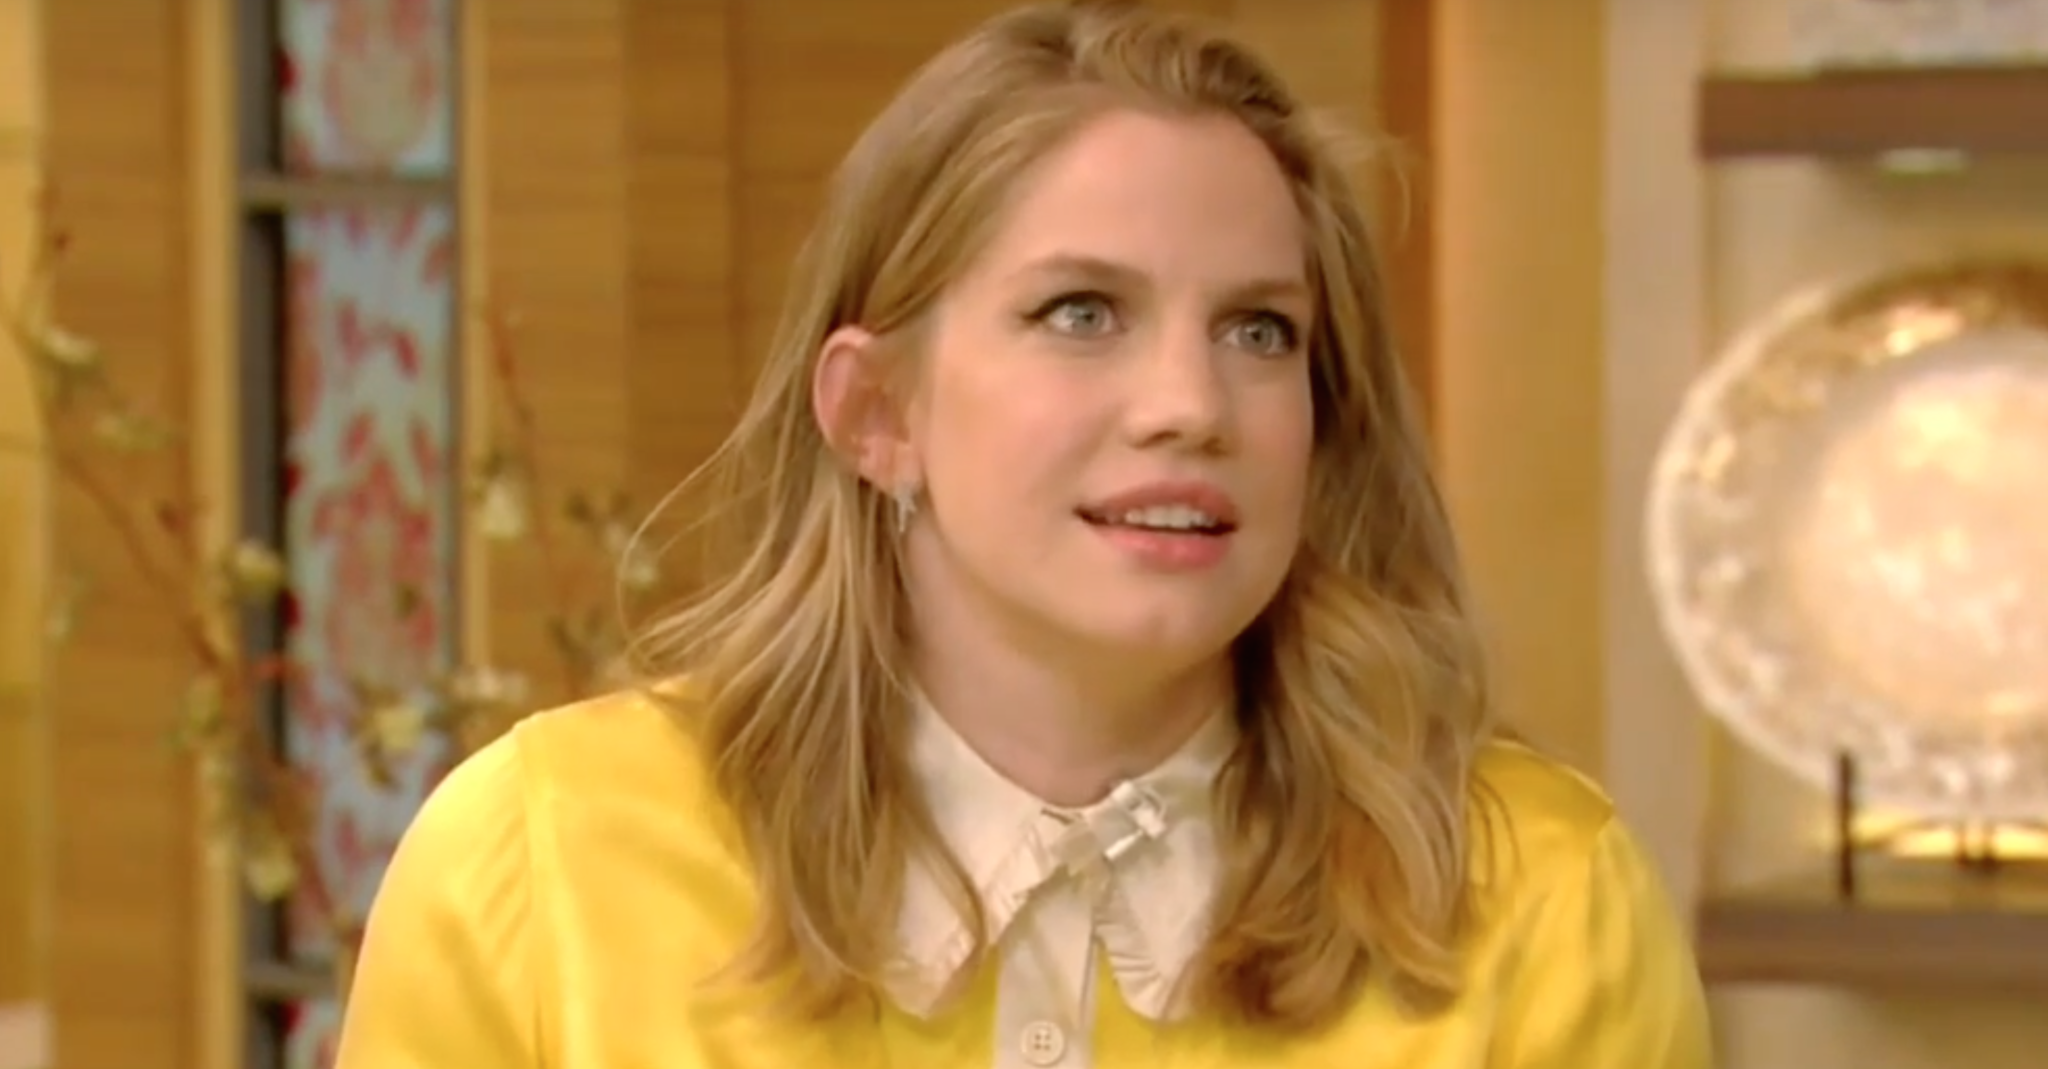 Images Anna Chlumsky naked (49 photos), Pussy, Cleavage, Boobs, butt 2006